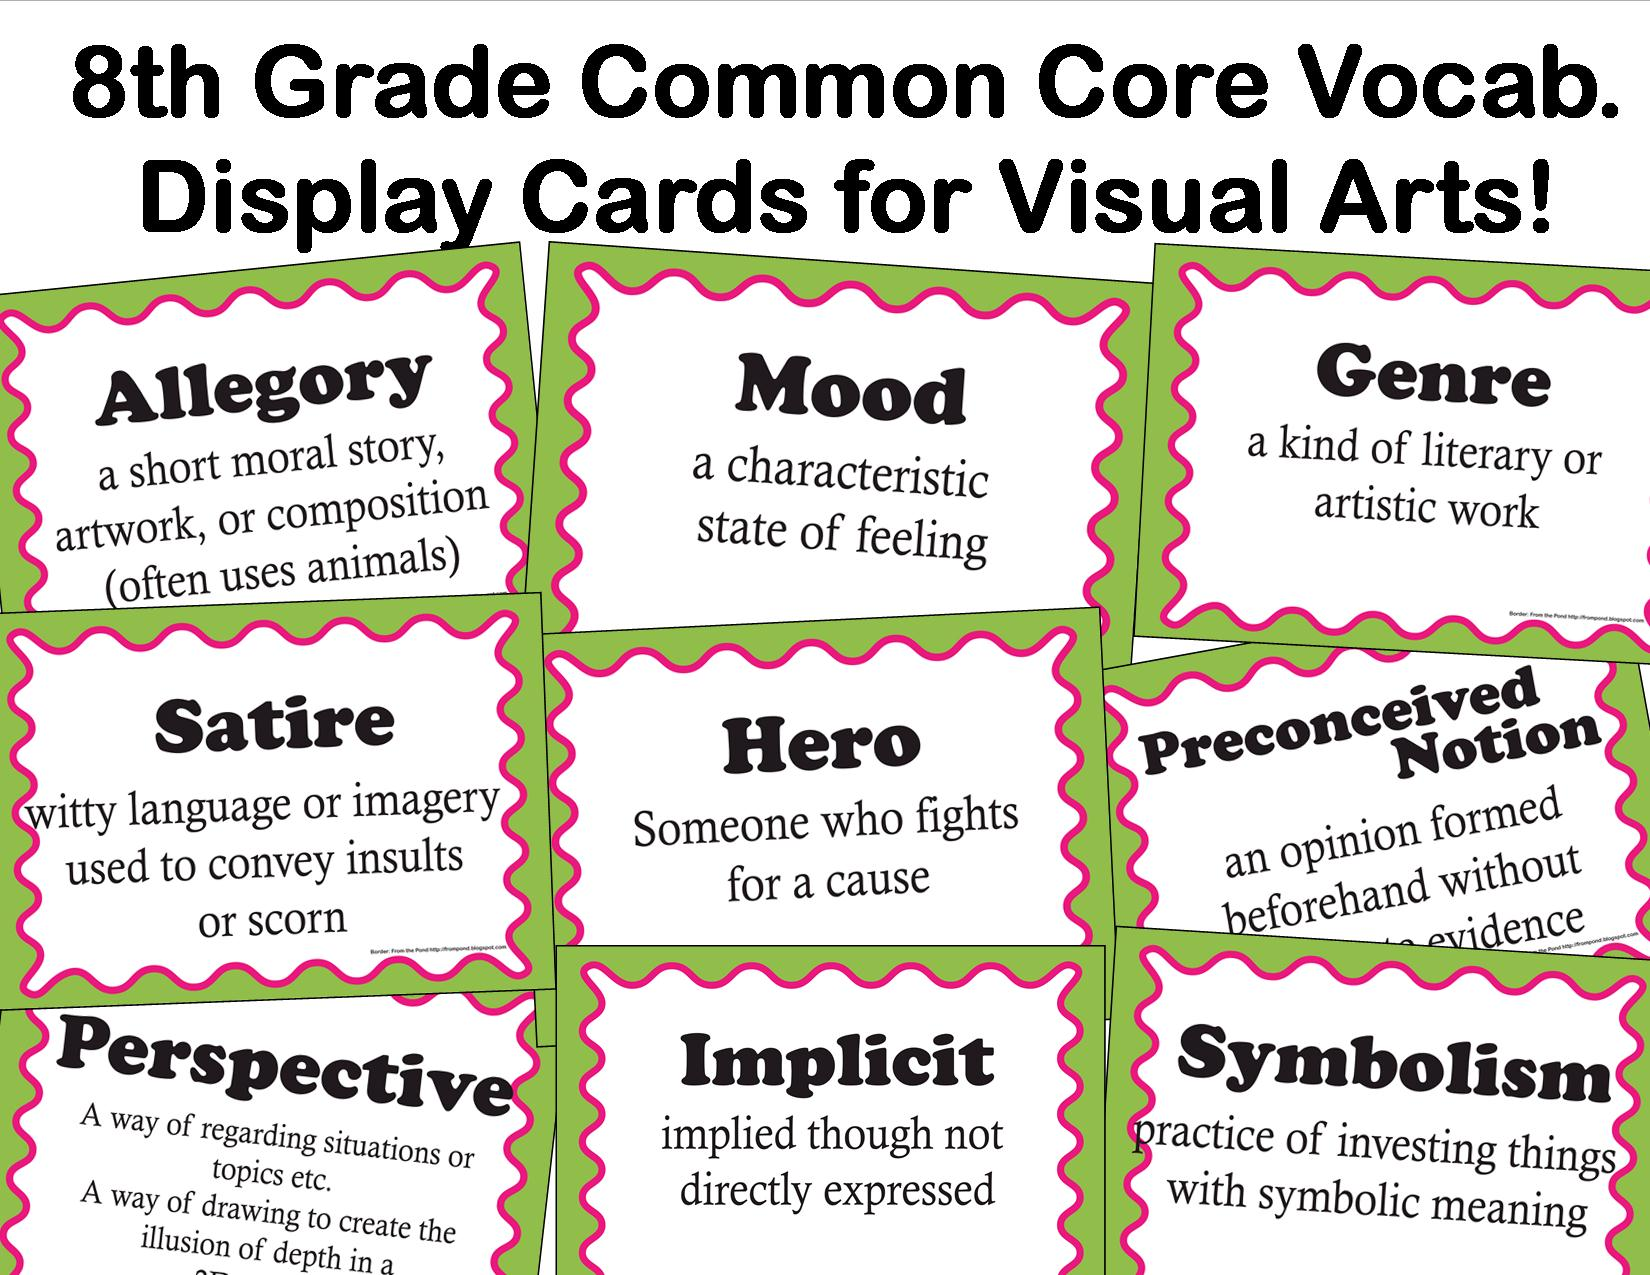 The Smartteacher Resource Common Core Language Arts Vocab For Visual Arts For 8th Grade